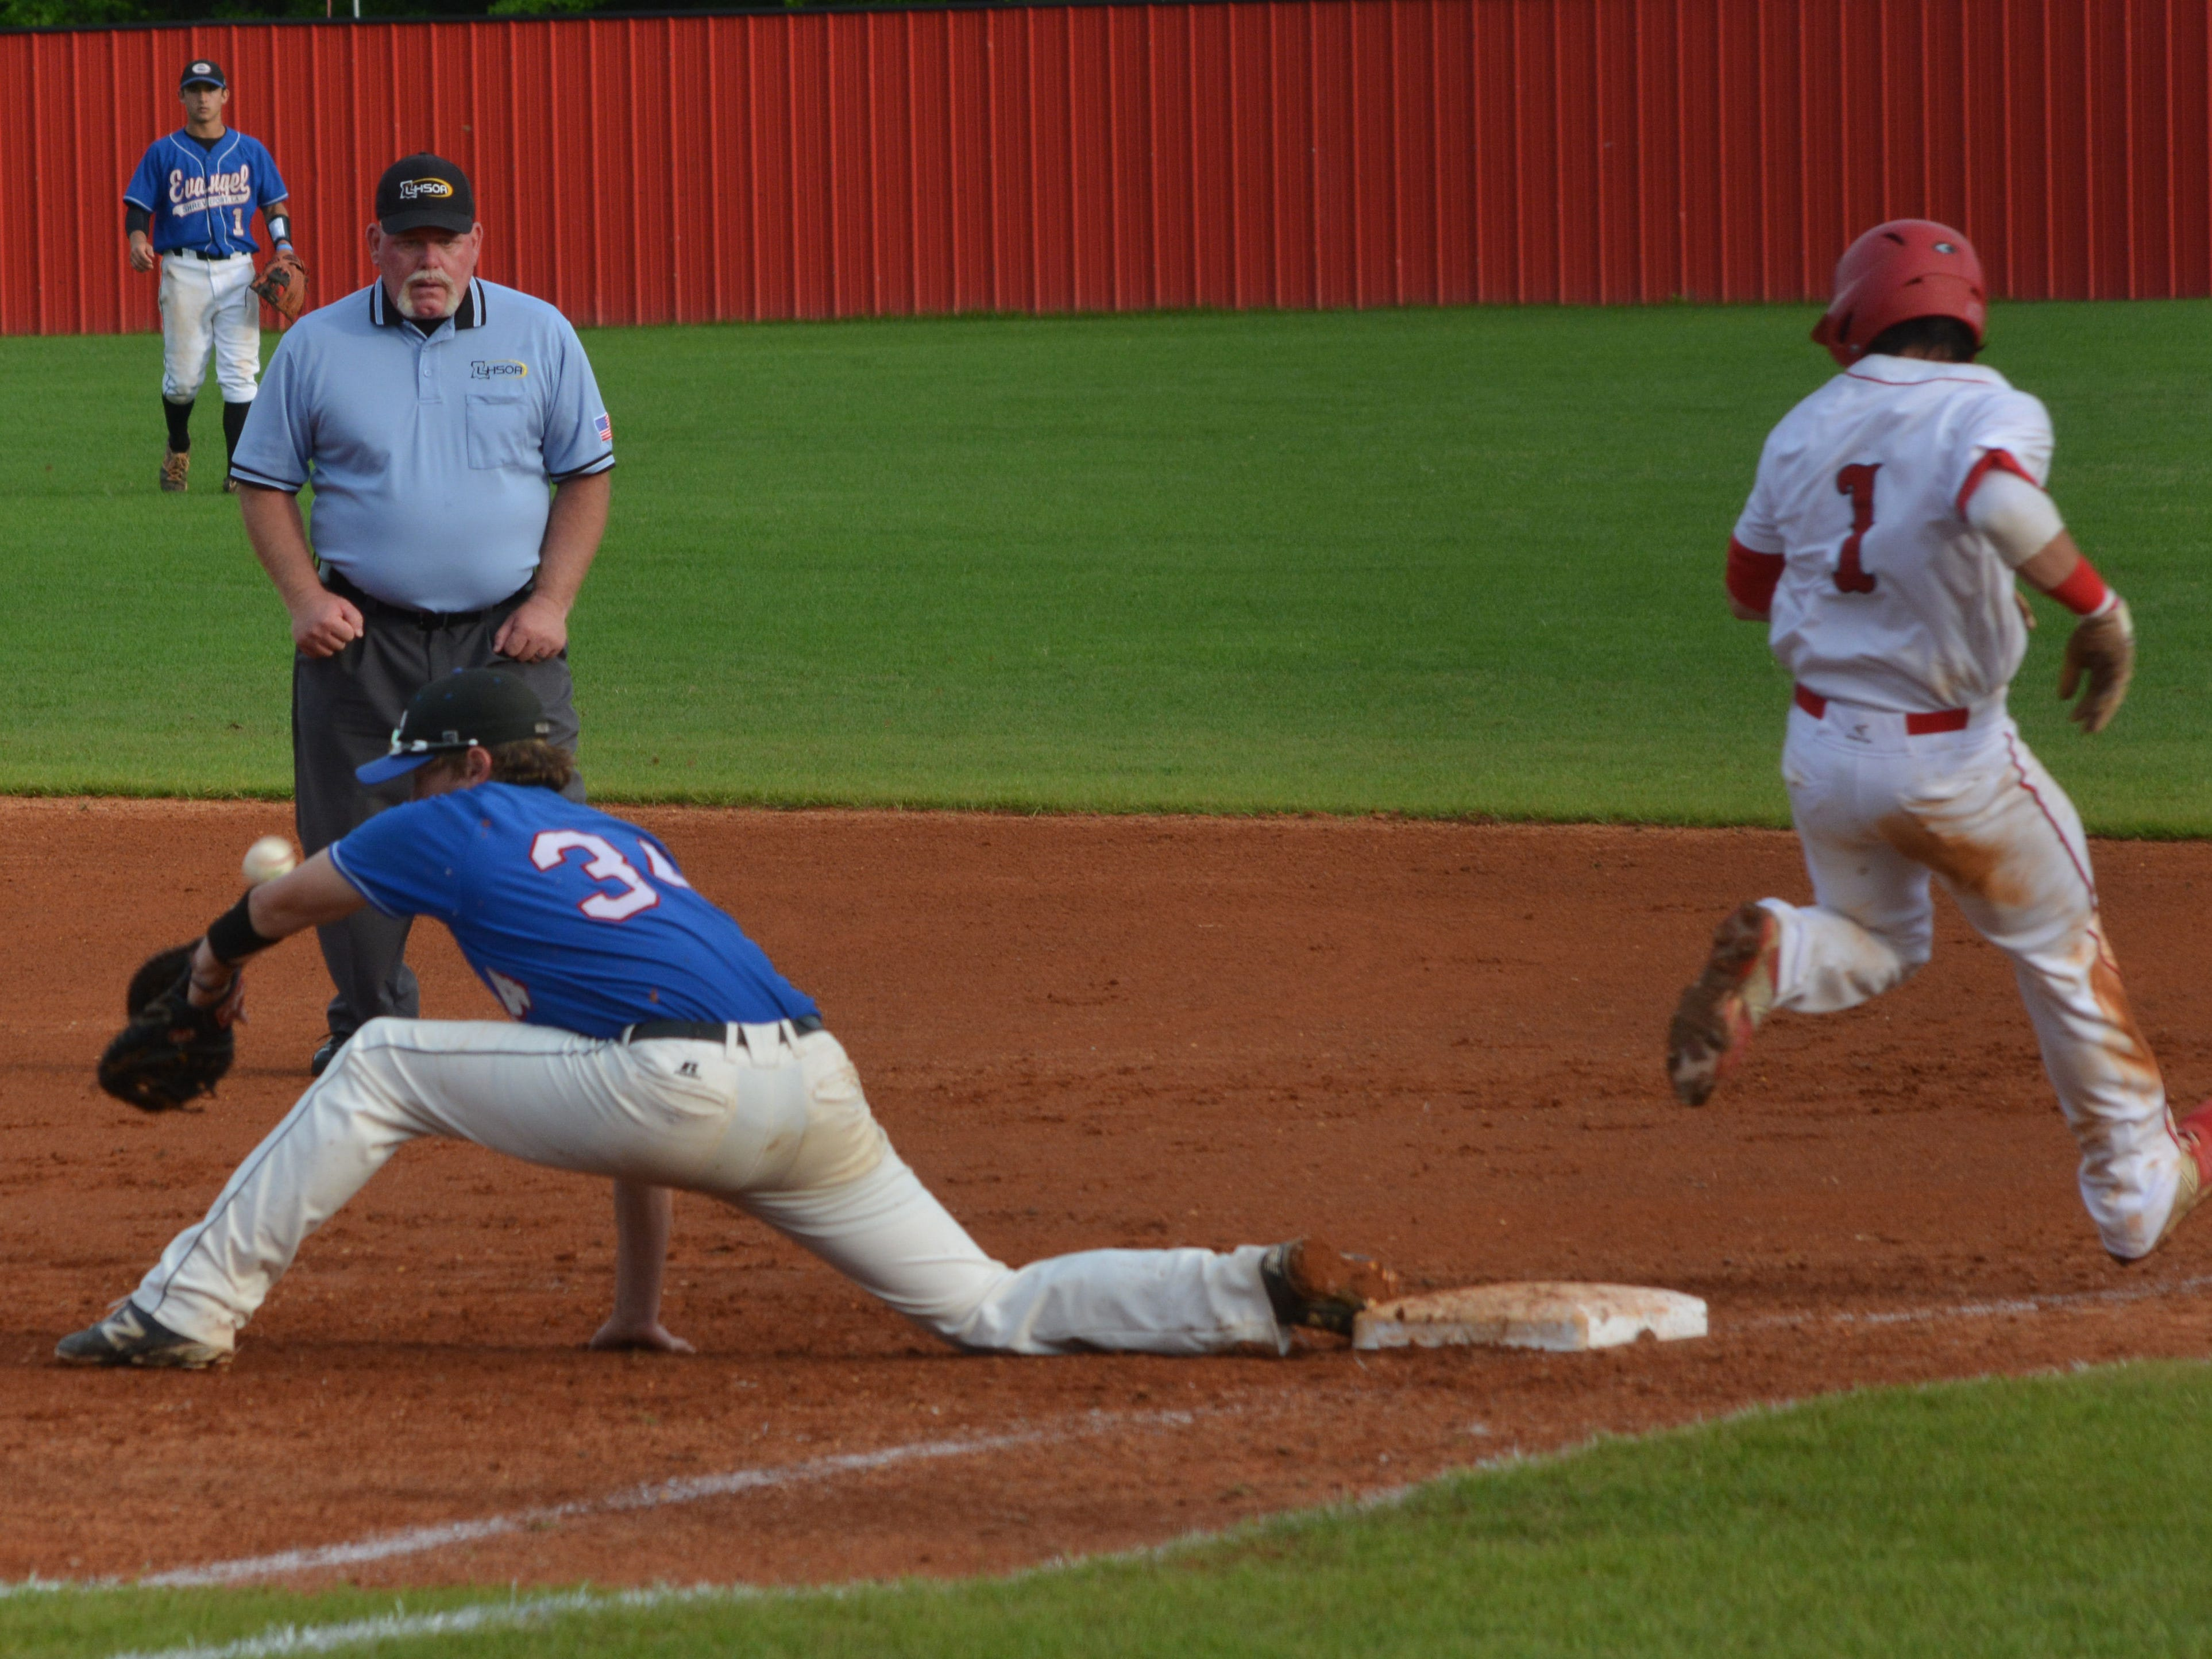 Tioga's Logan Dubois (1, right) is safe at first after the ball bounces off Evangel's Shane Miears' (34) arm Friday.